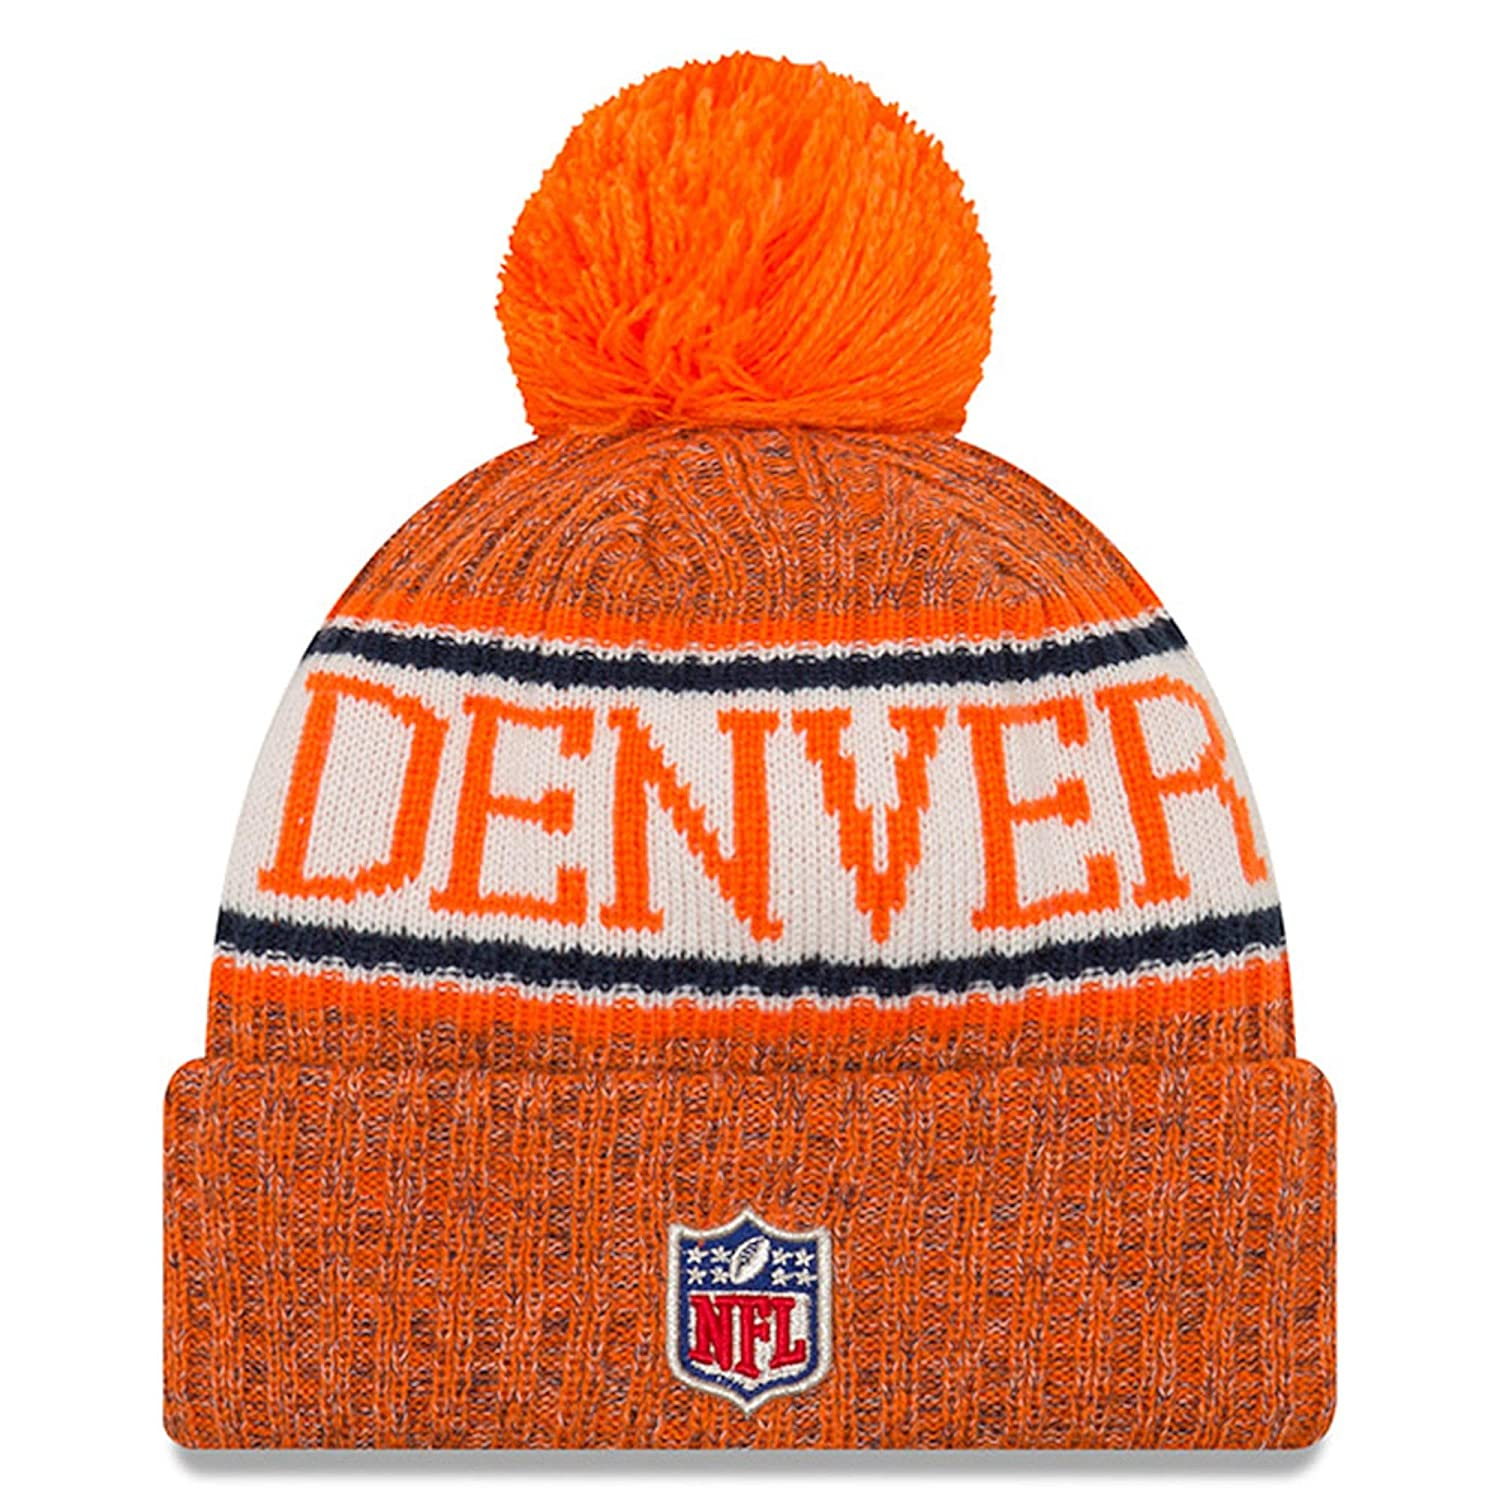 218505921c5 Amazon.com   New Era Knit Denver Broncos Biggest Fan Redux Sport Knit  Winter Stocking Beanie Pom Hat Cap NFL   Sports   Outdoors